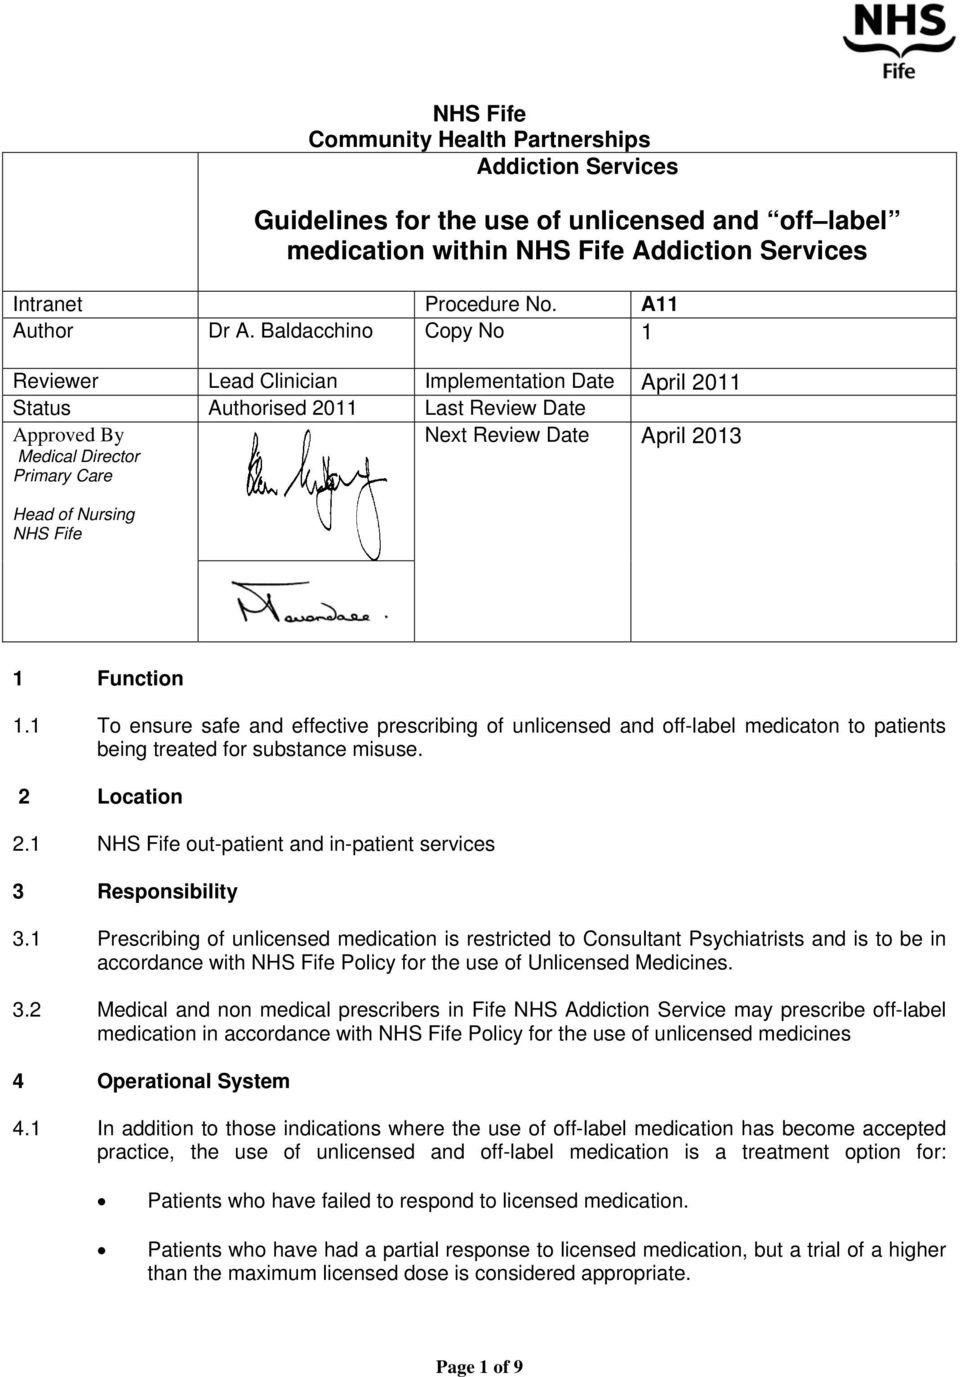 Nursing NHS Fife 1 Function 1.1 To ensure safe and effective prescribing of unlicensed and off-label medicaton to patients being treated for substance misuse. 2 Location 2.